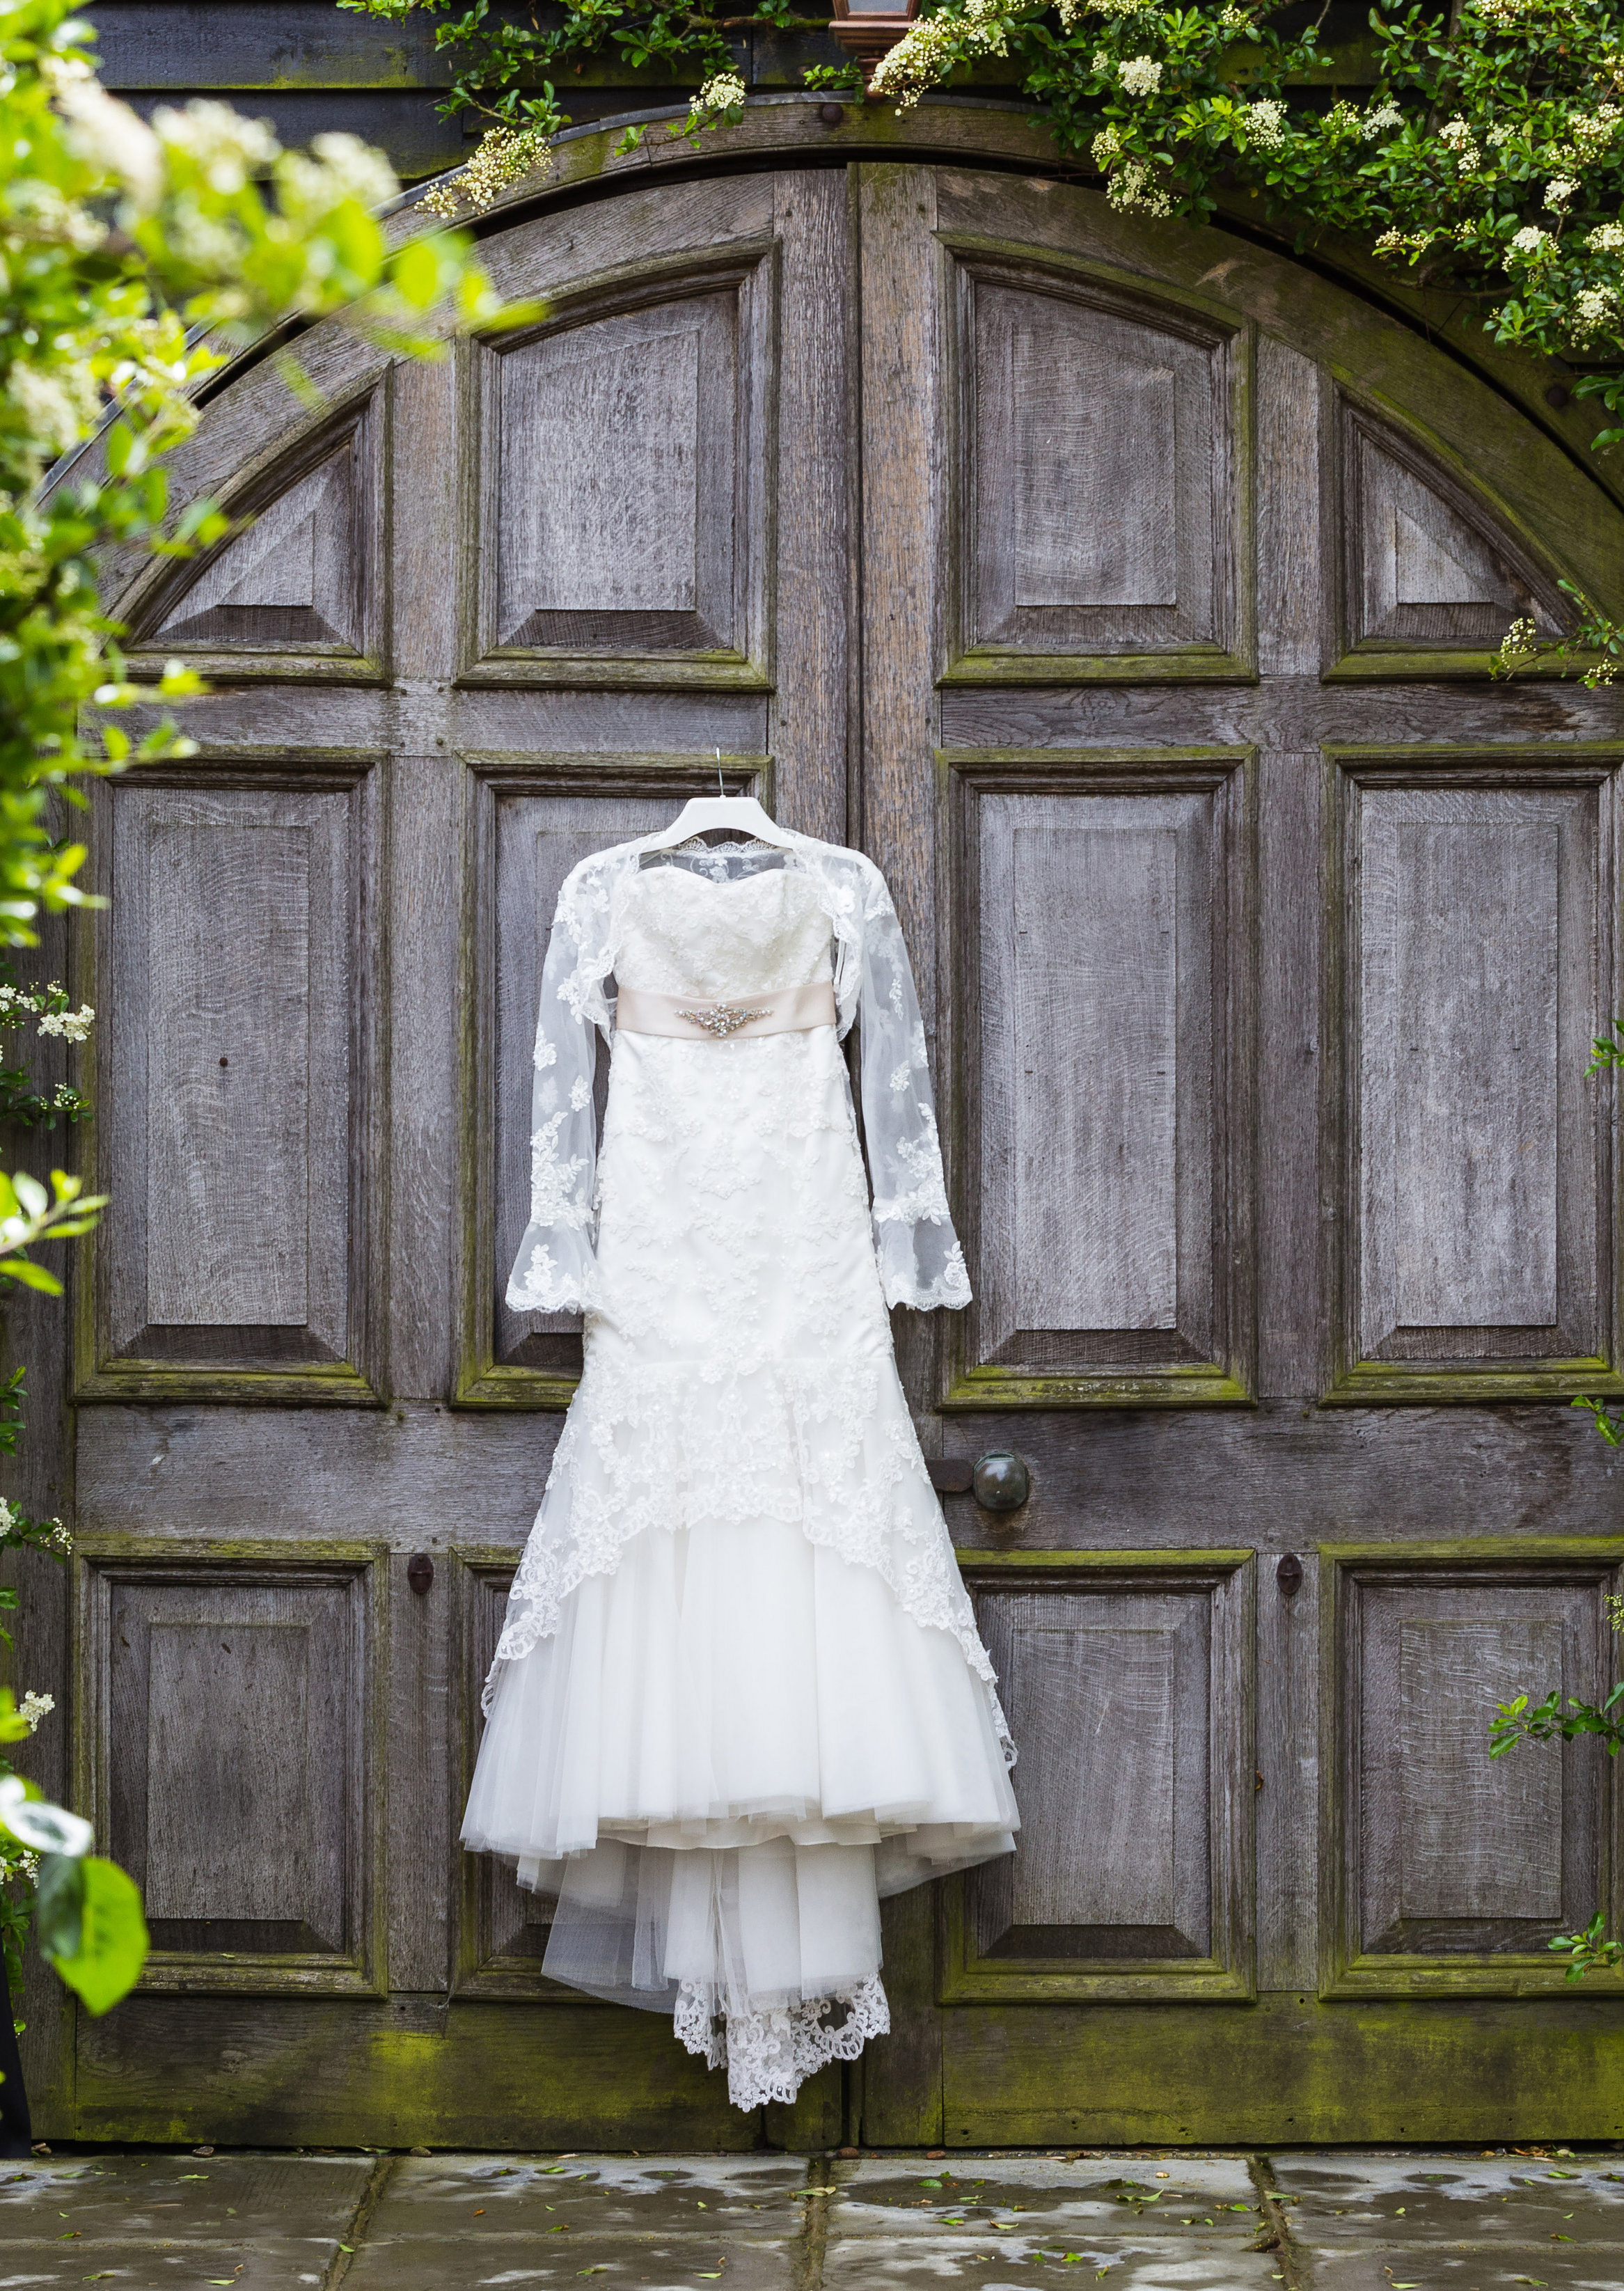 A White Wedding Dress hanging on a barn door at winters barn in canterbury